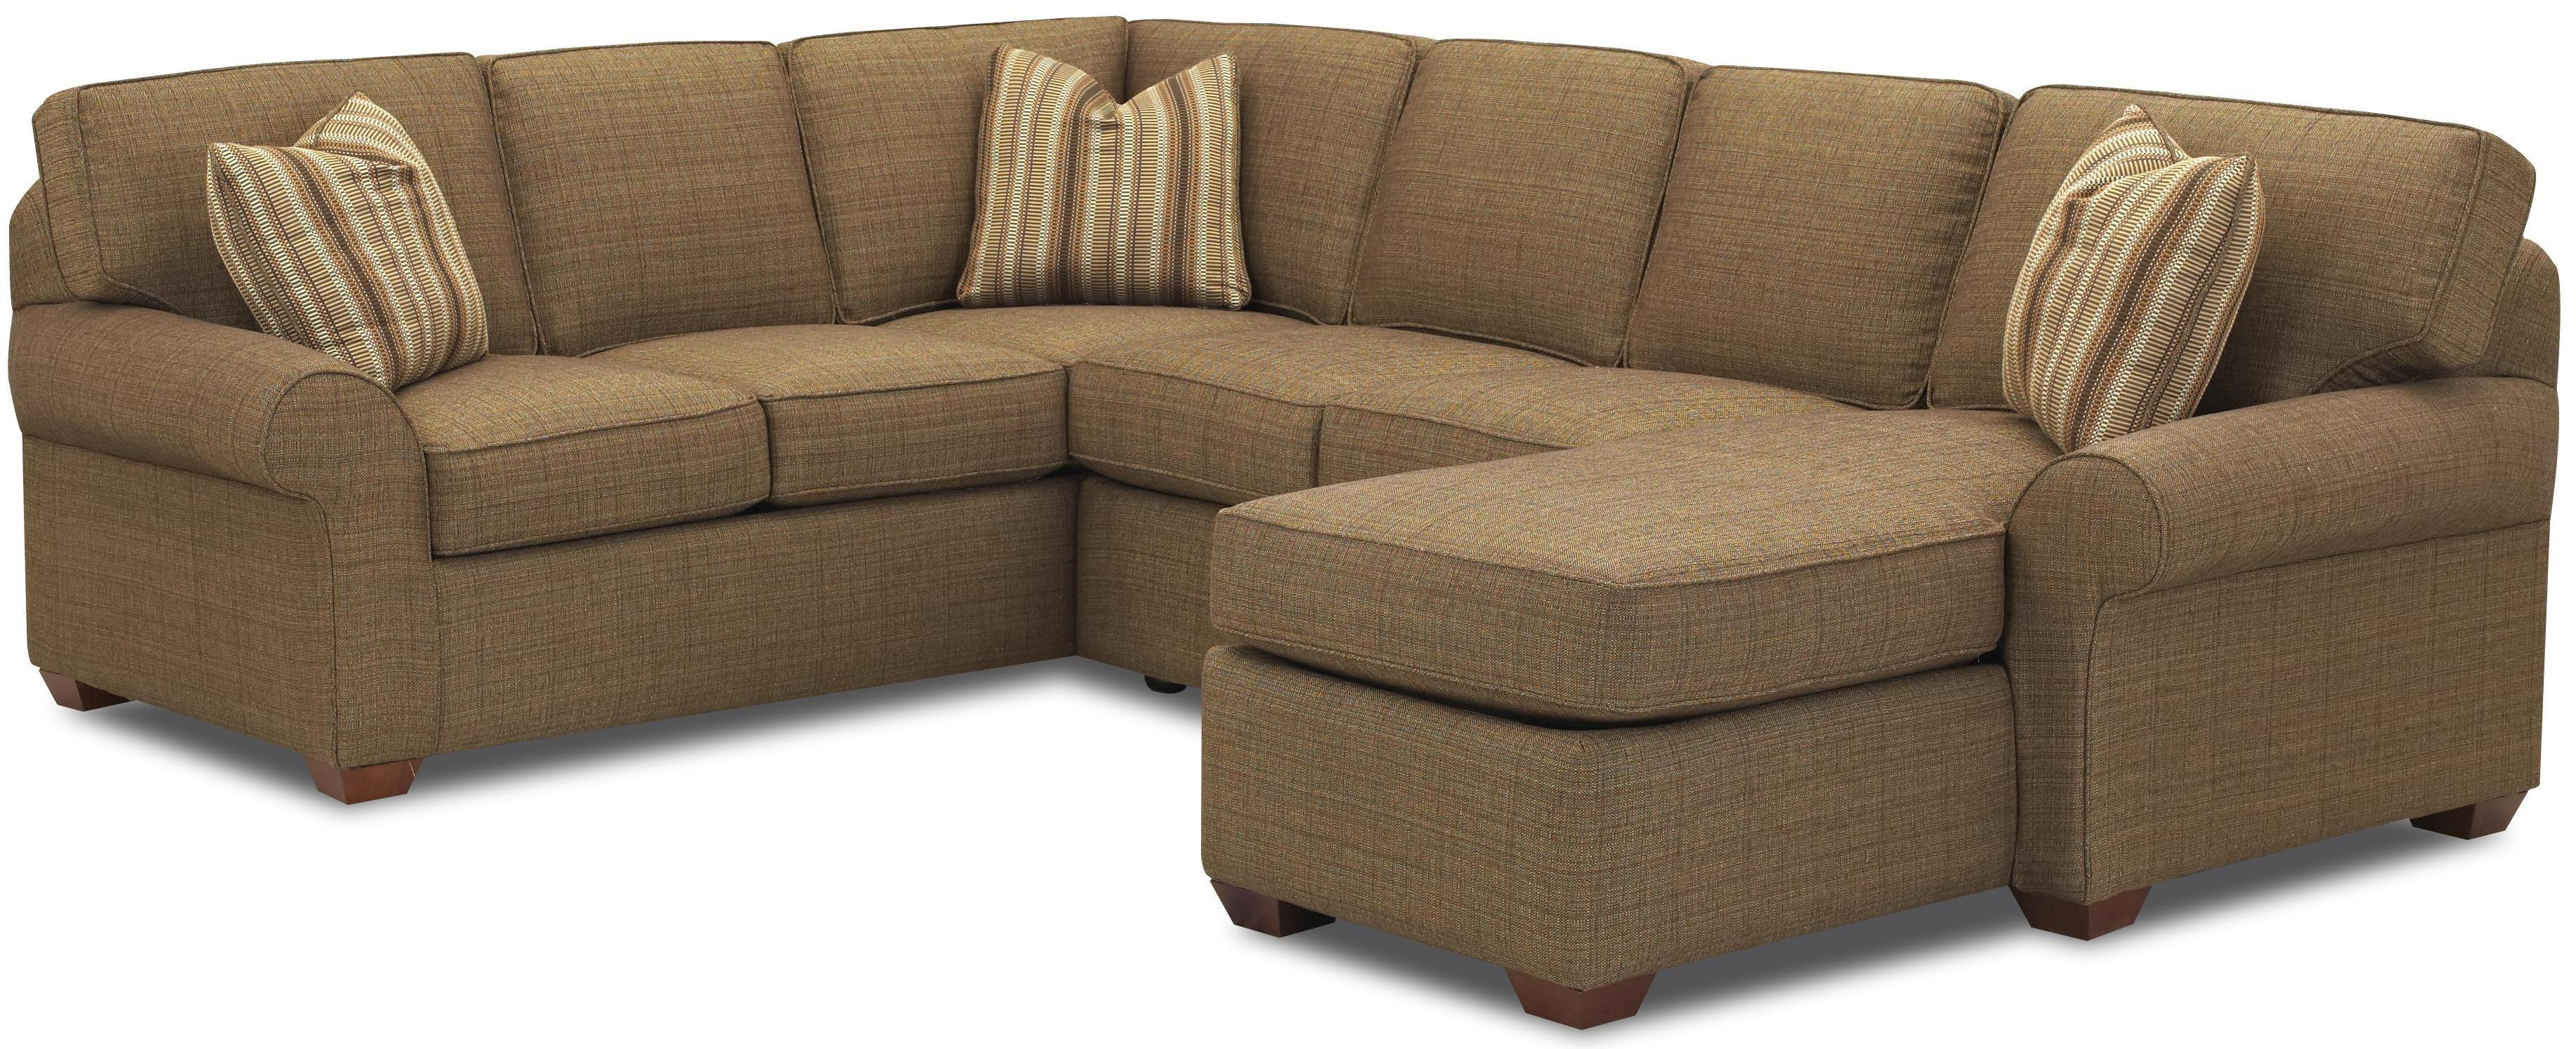 Sectional Couches With Chaise Lounge | Tehranmix Decoration Within Small Sofas With Chaise Lounge (Image 8 of 20)